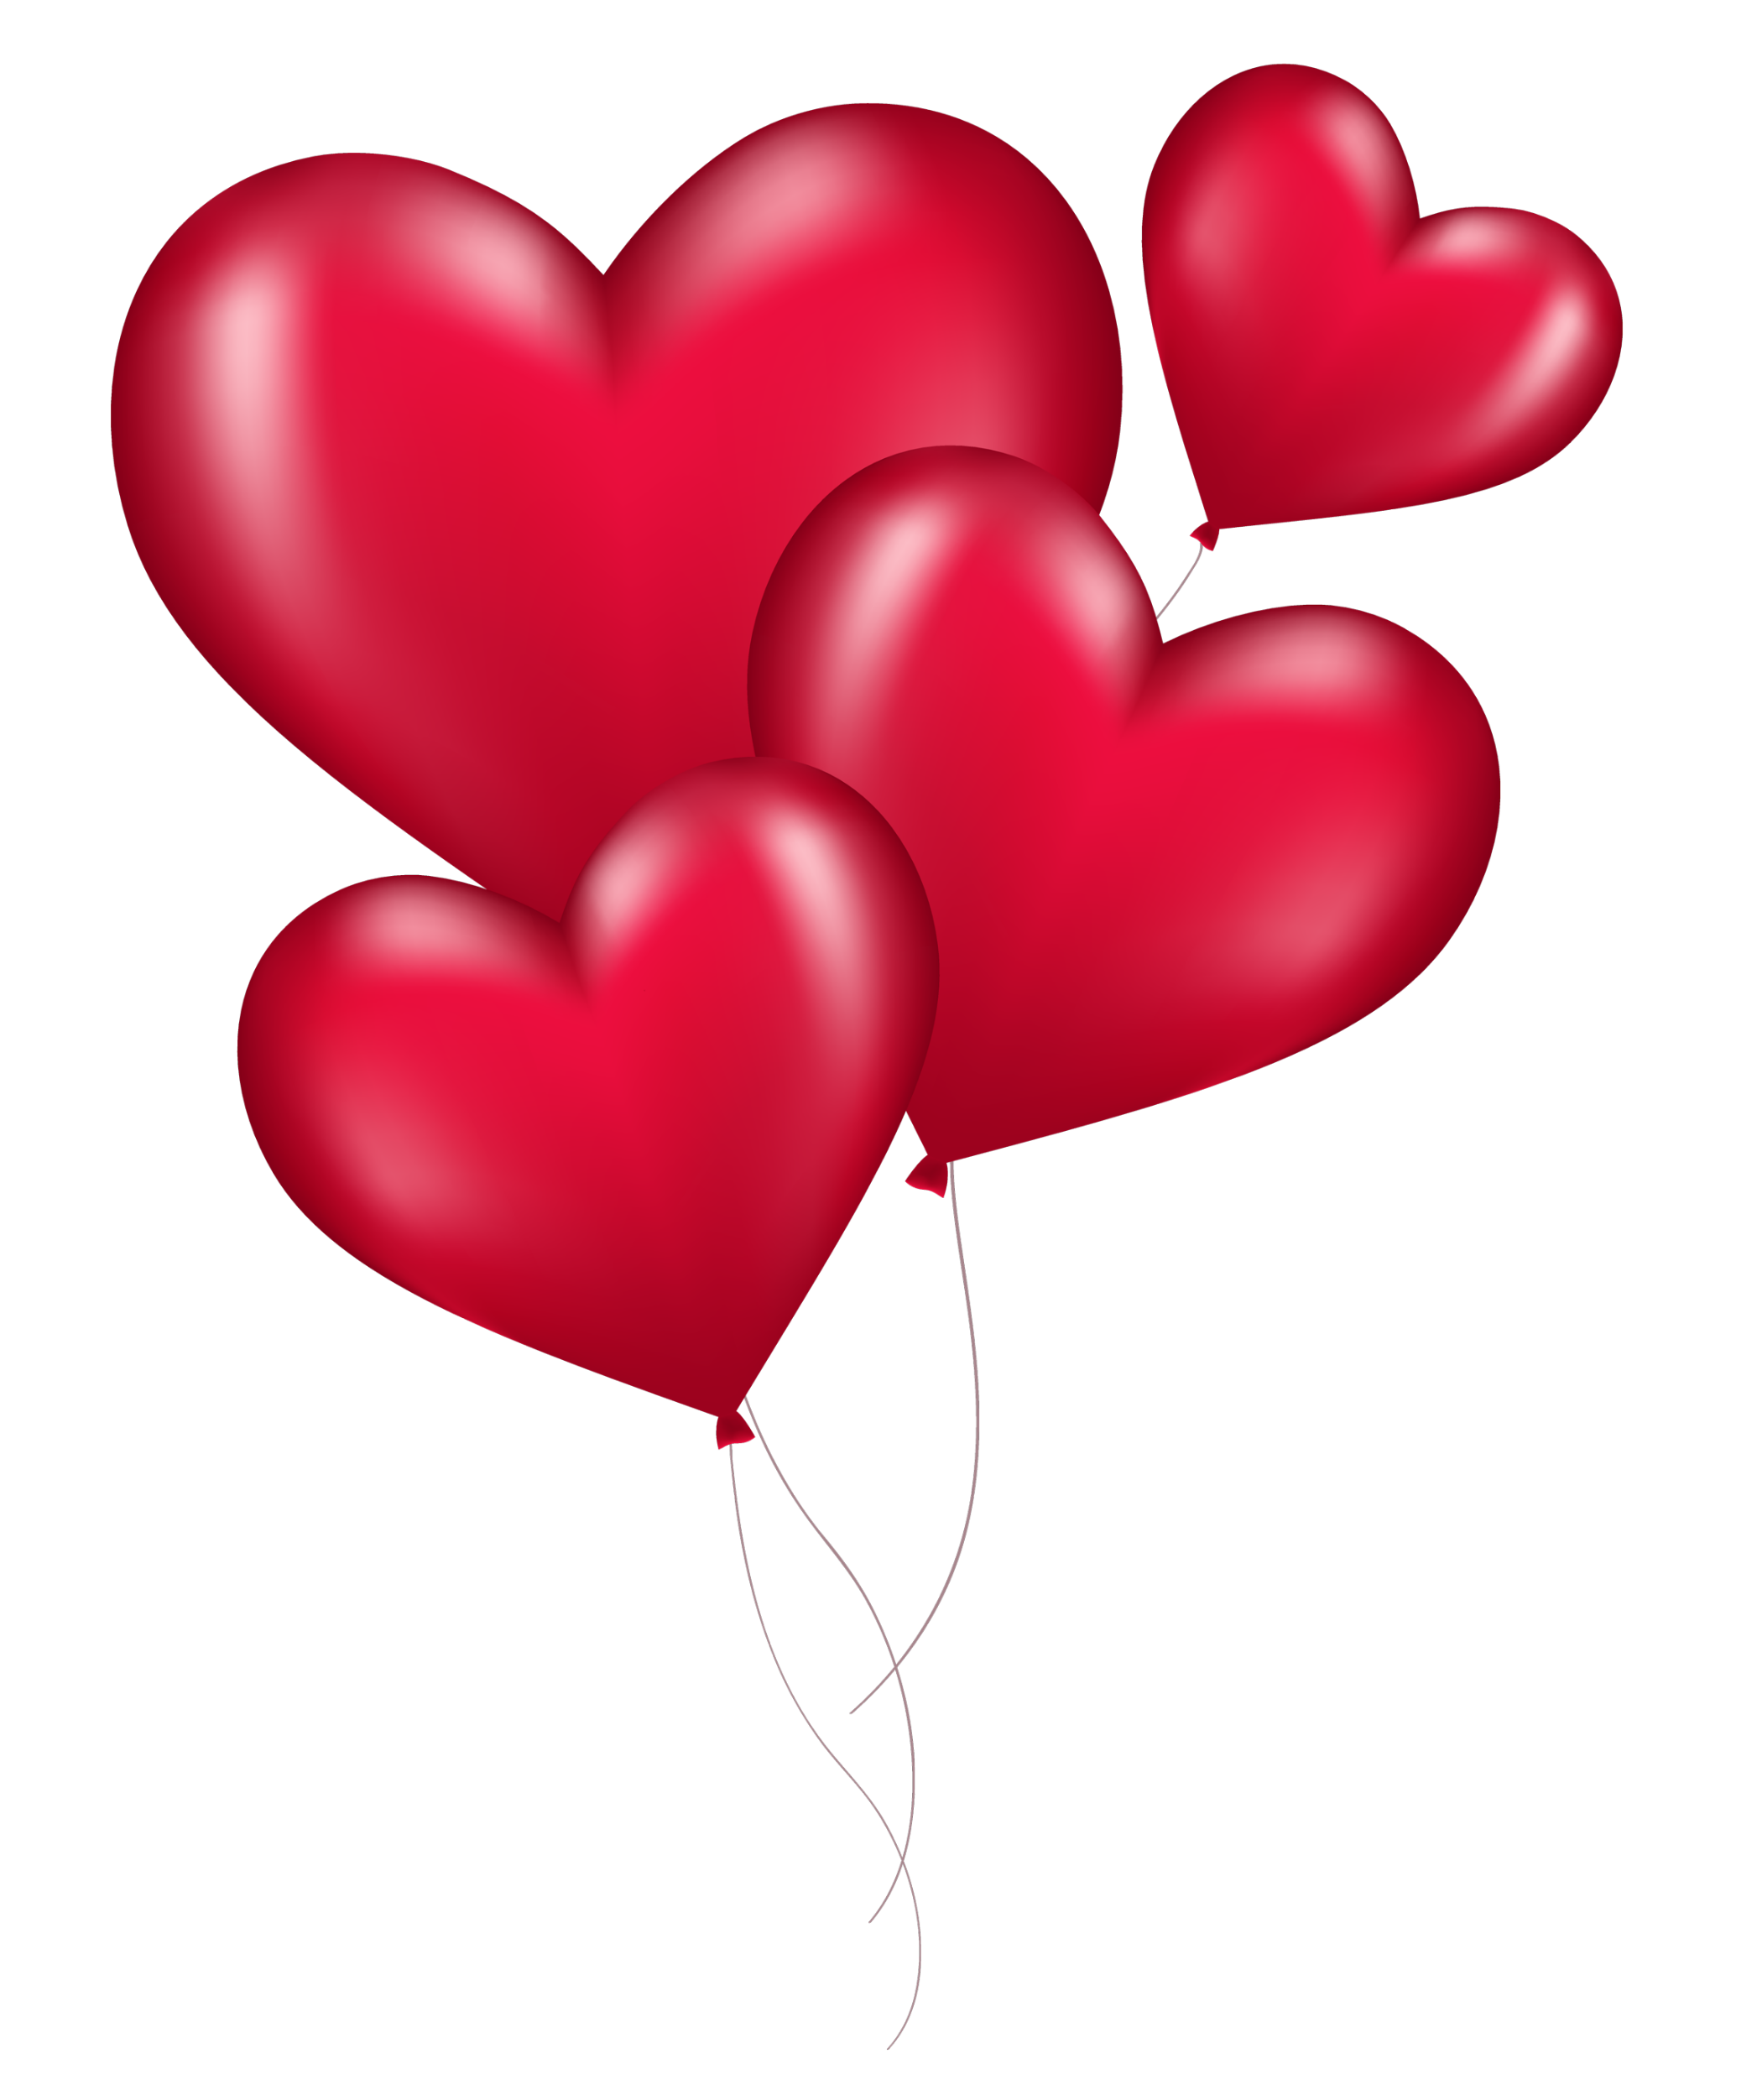 Pin By Abril On Picsart Love Stickers Heart Balloons Balloons Love Wallpaper